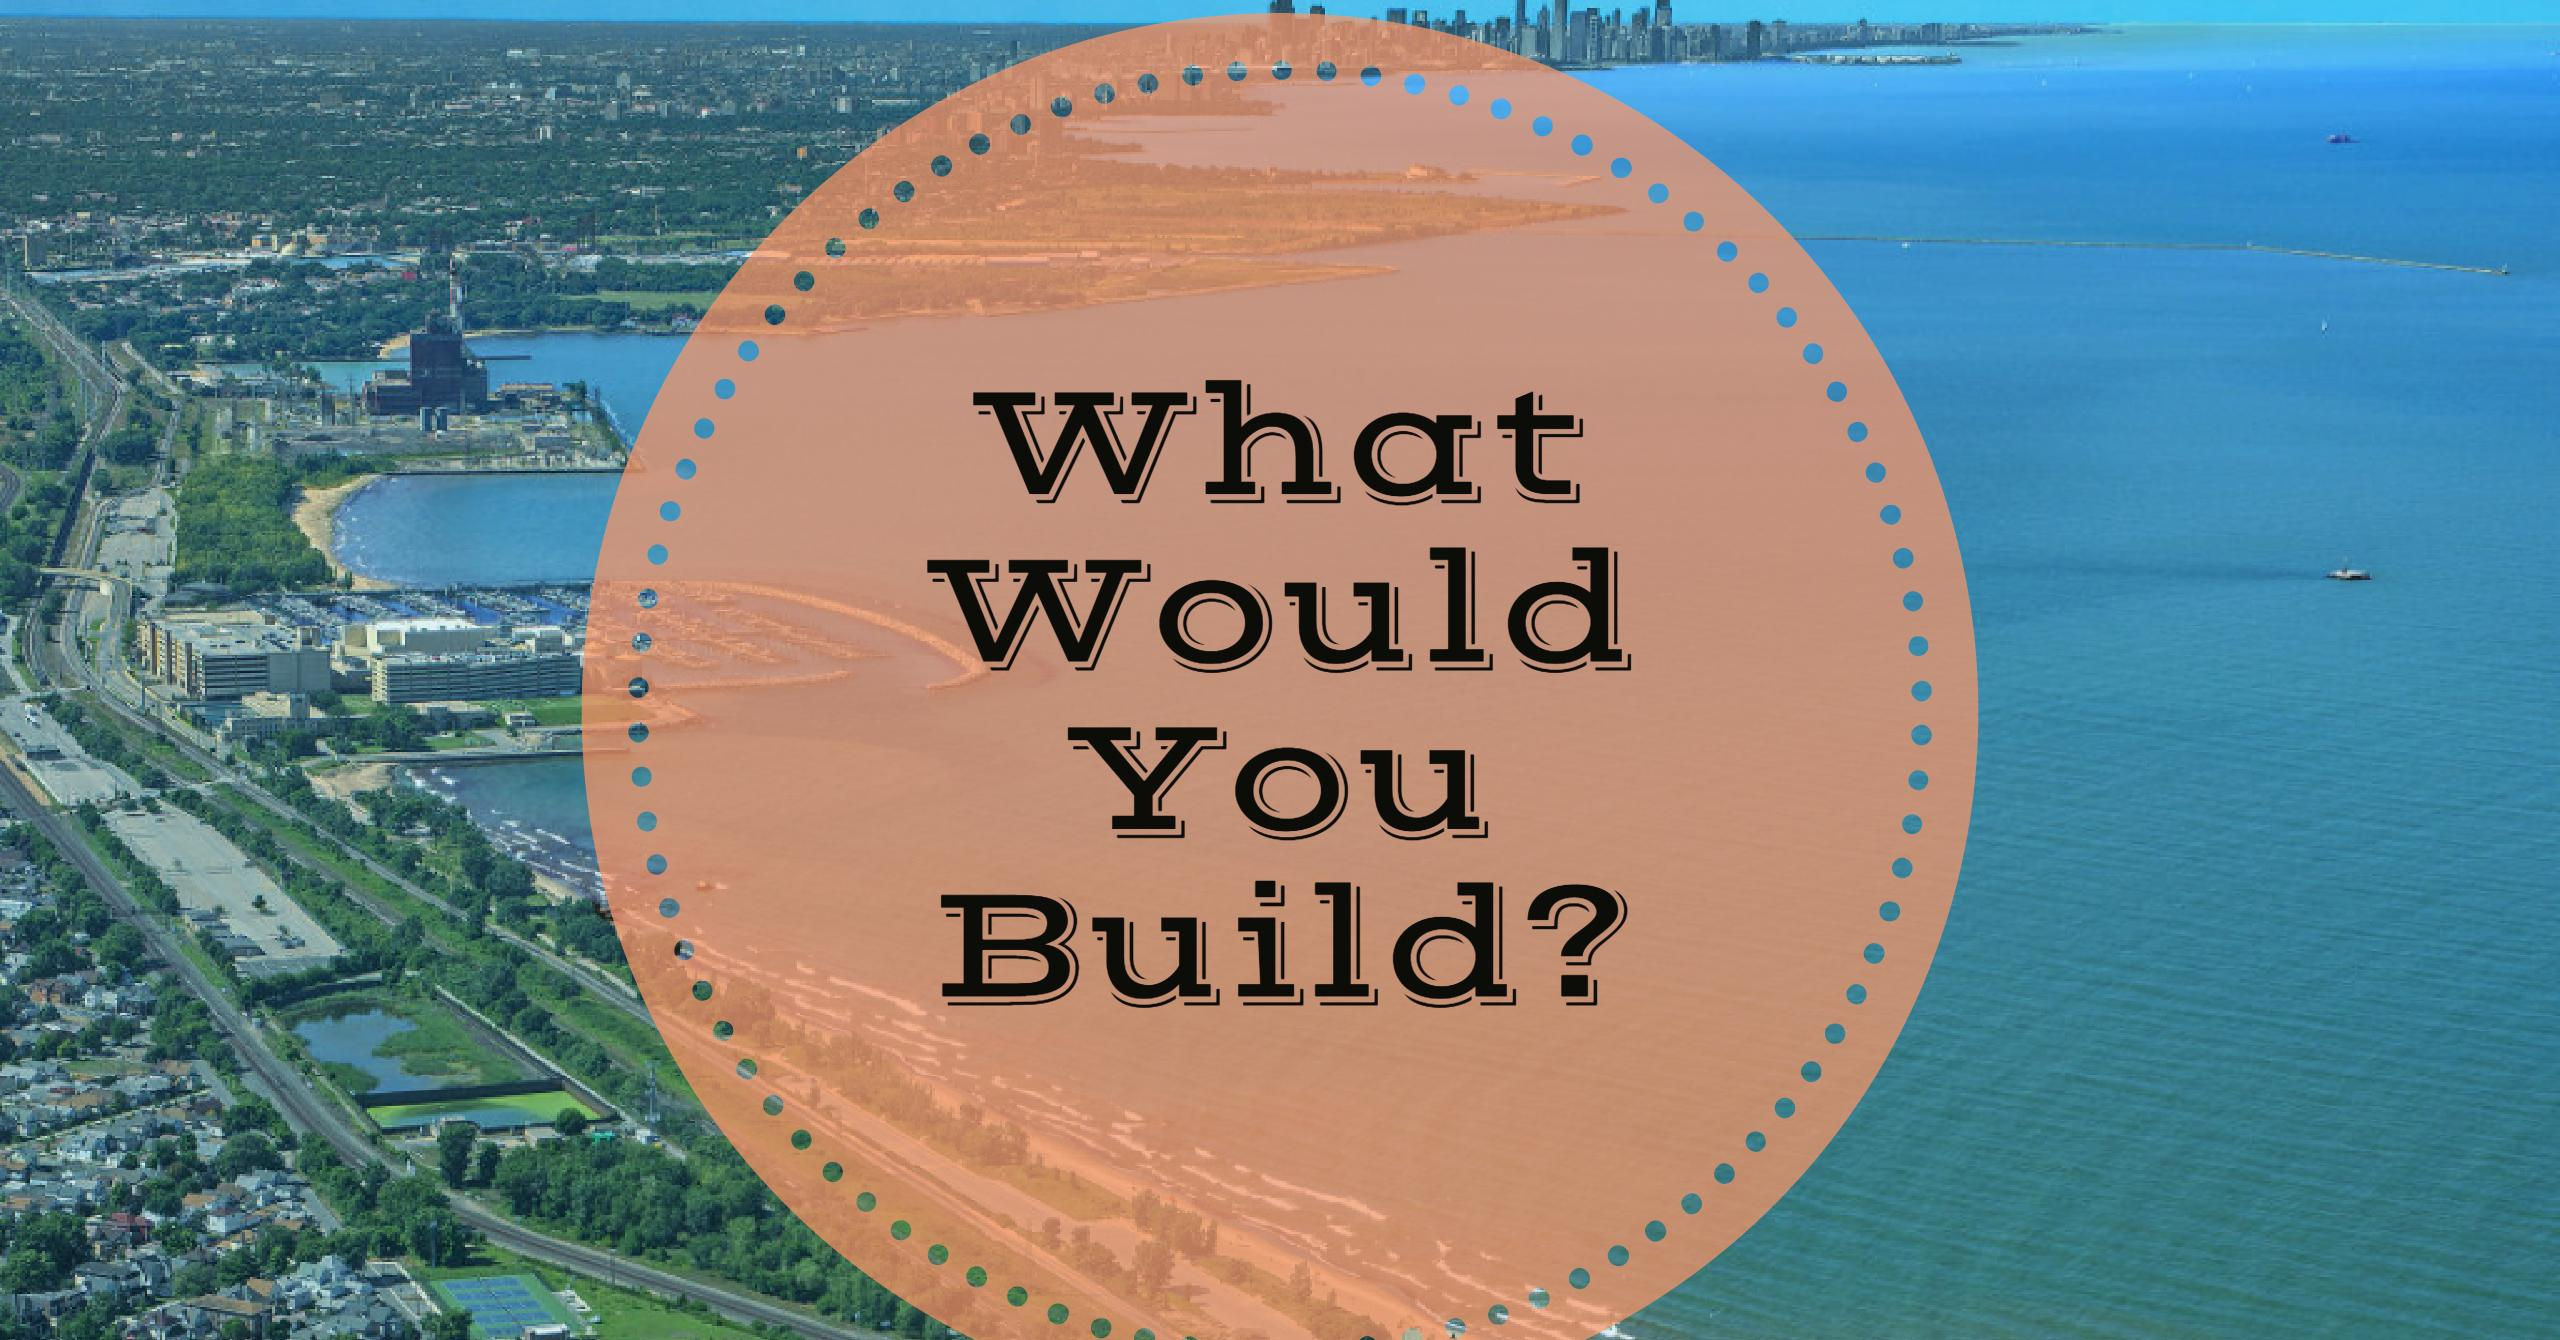 If Region Residents Could Build Something New, What Would They Build?